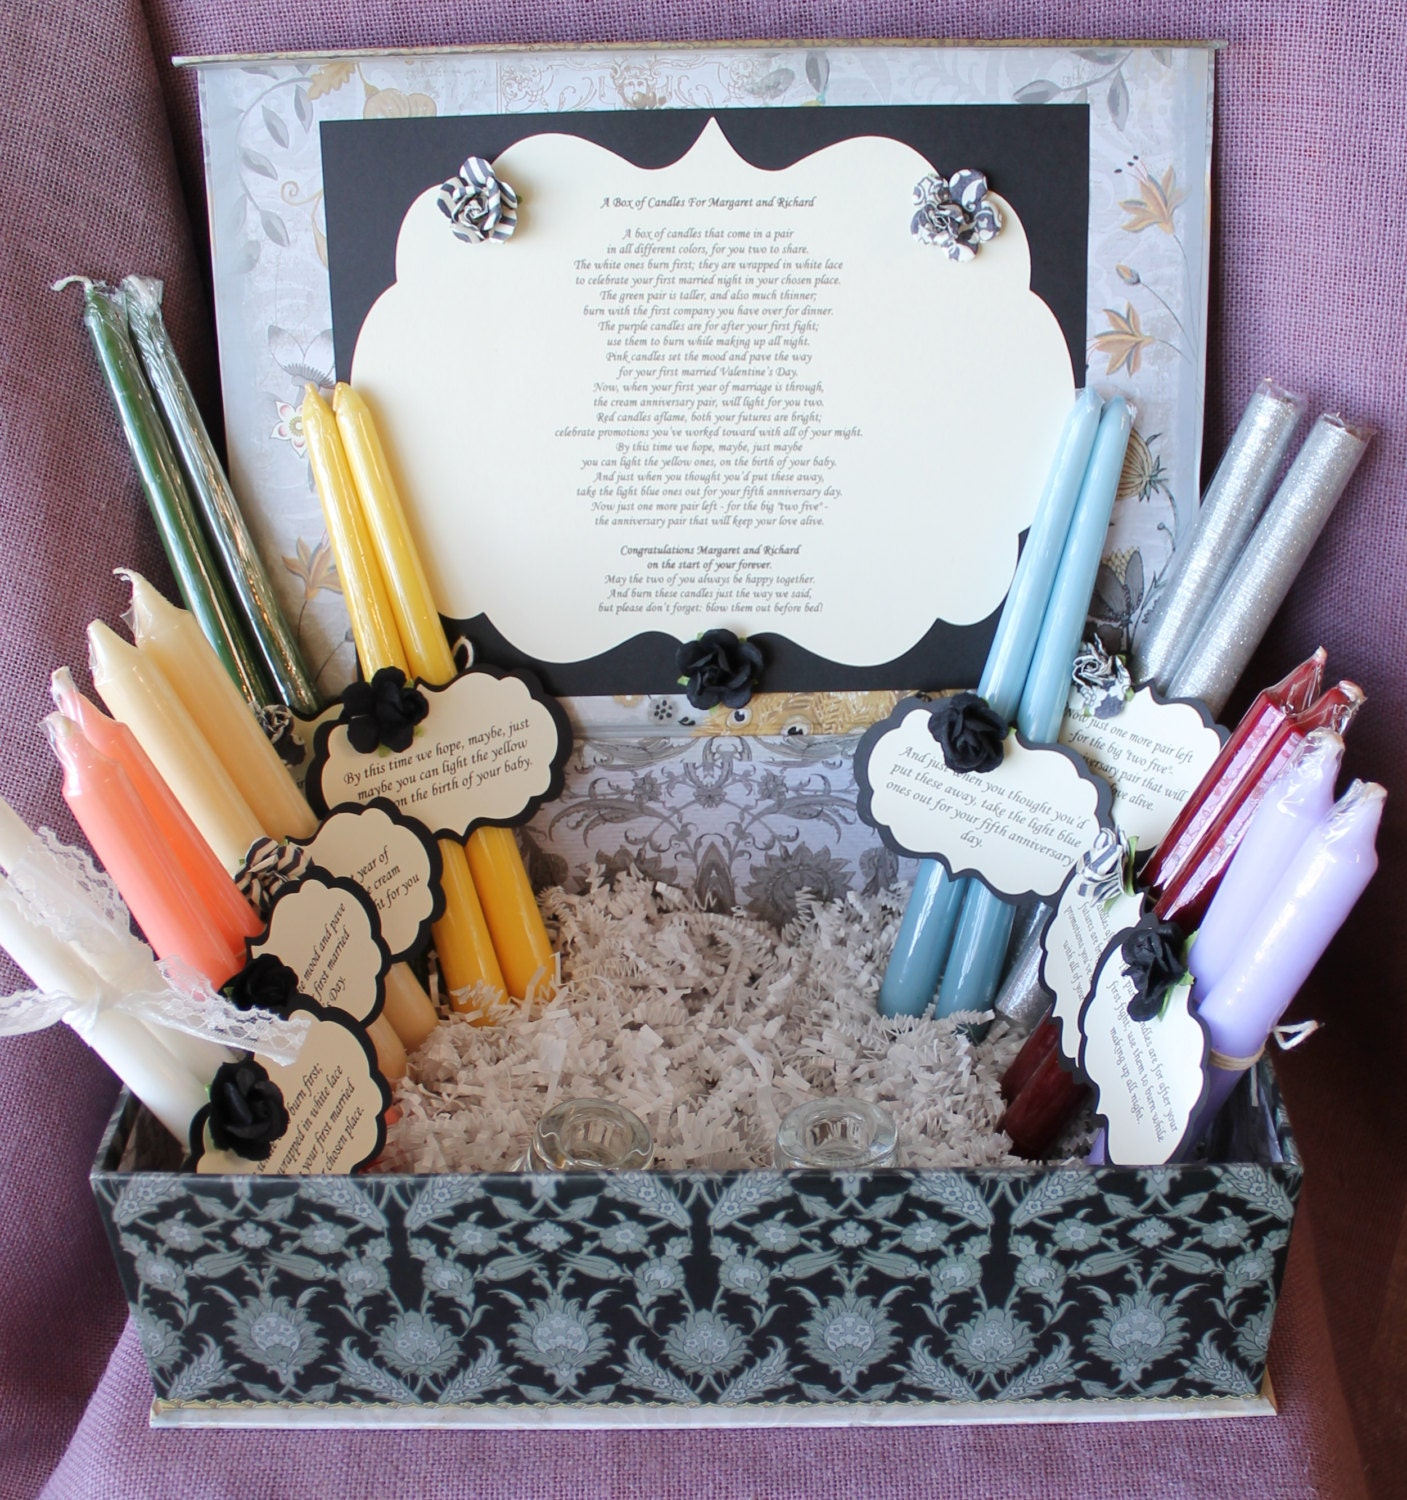 Wedding Shower Candle Poem Gift Set. Peacock by MadyBellaDesigns